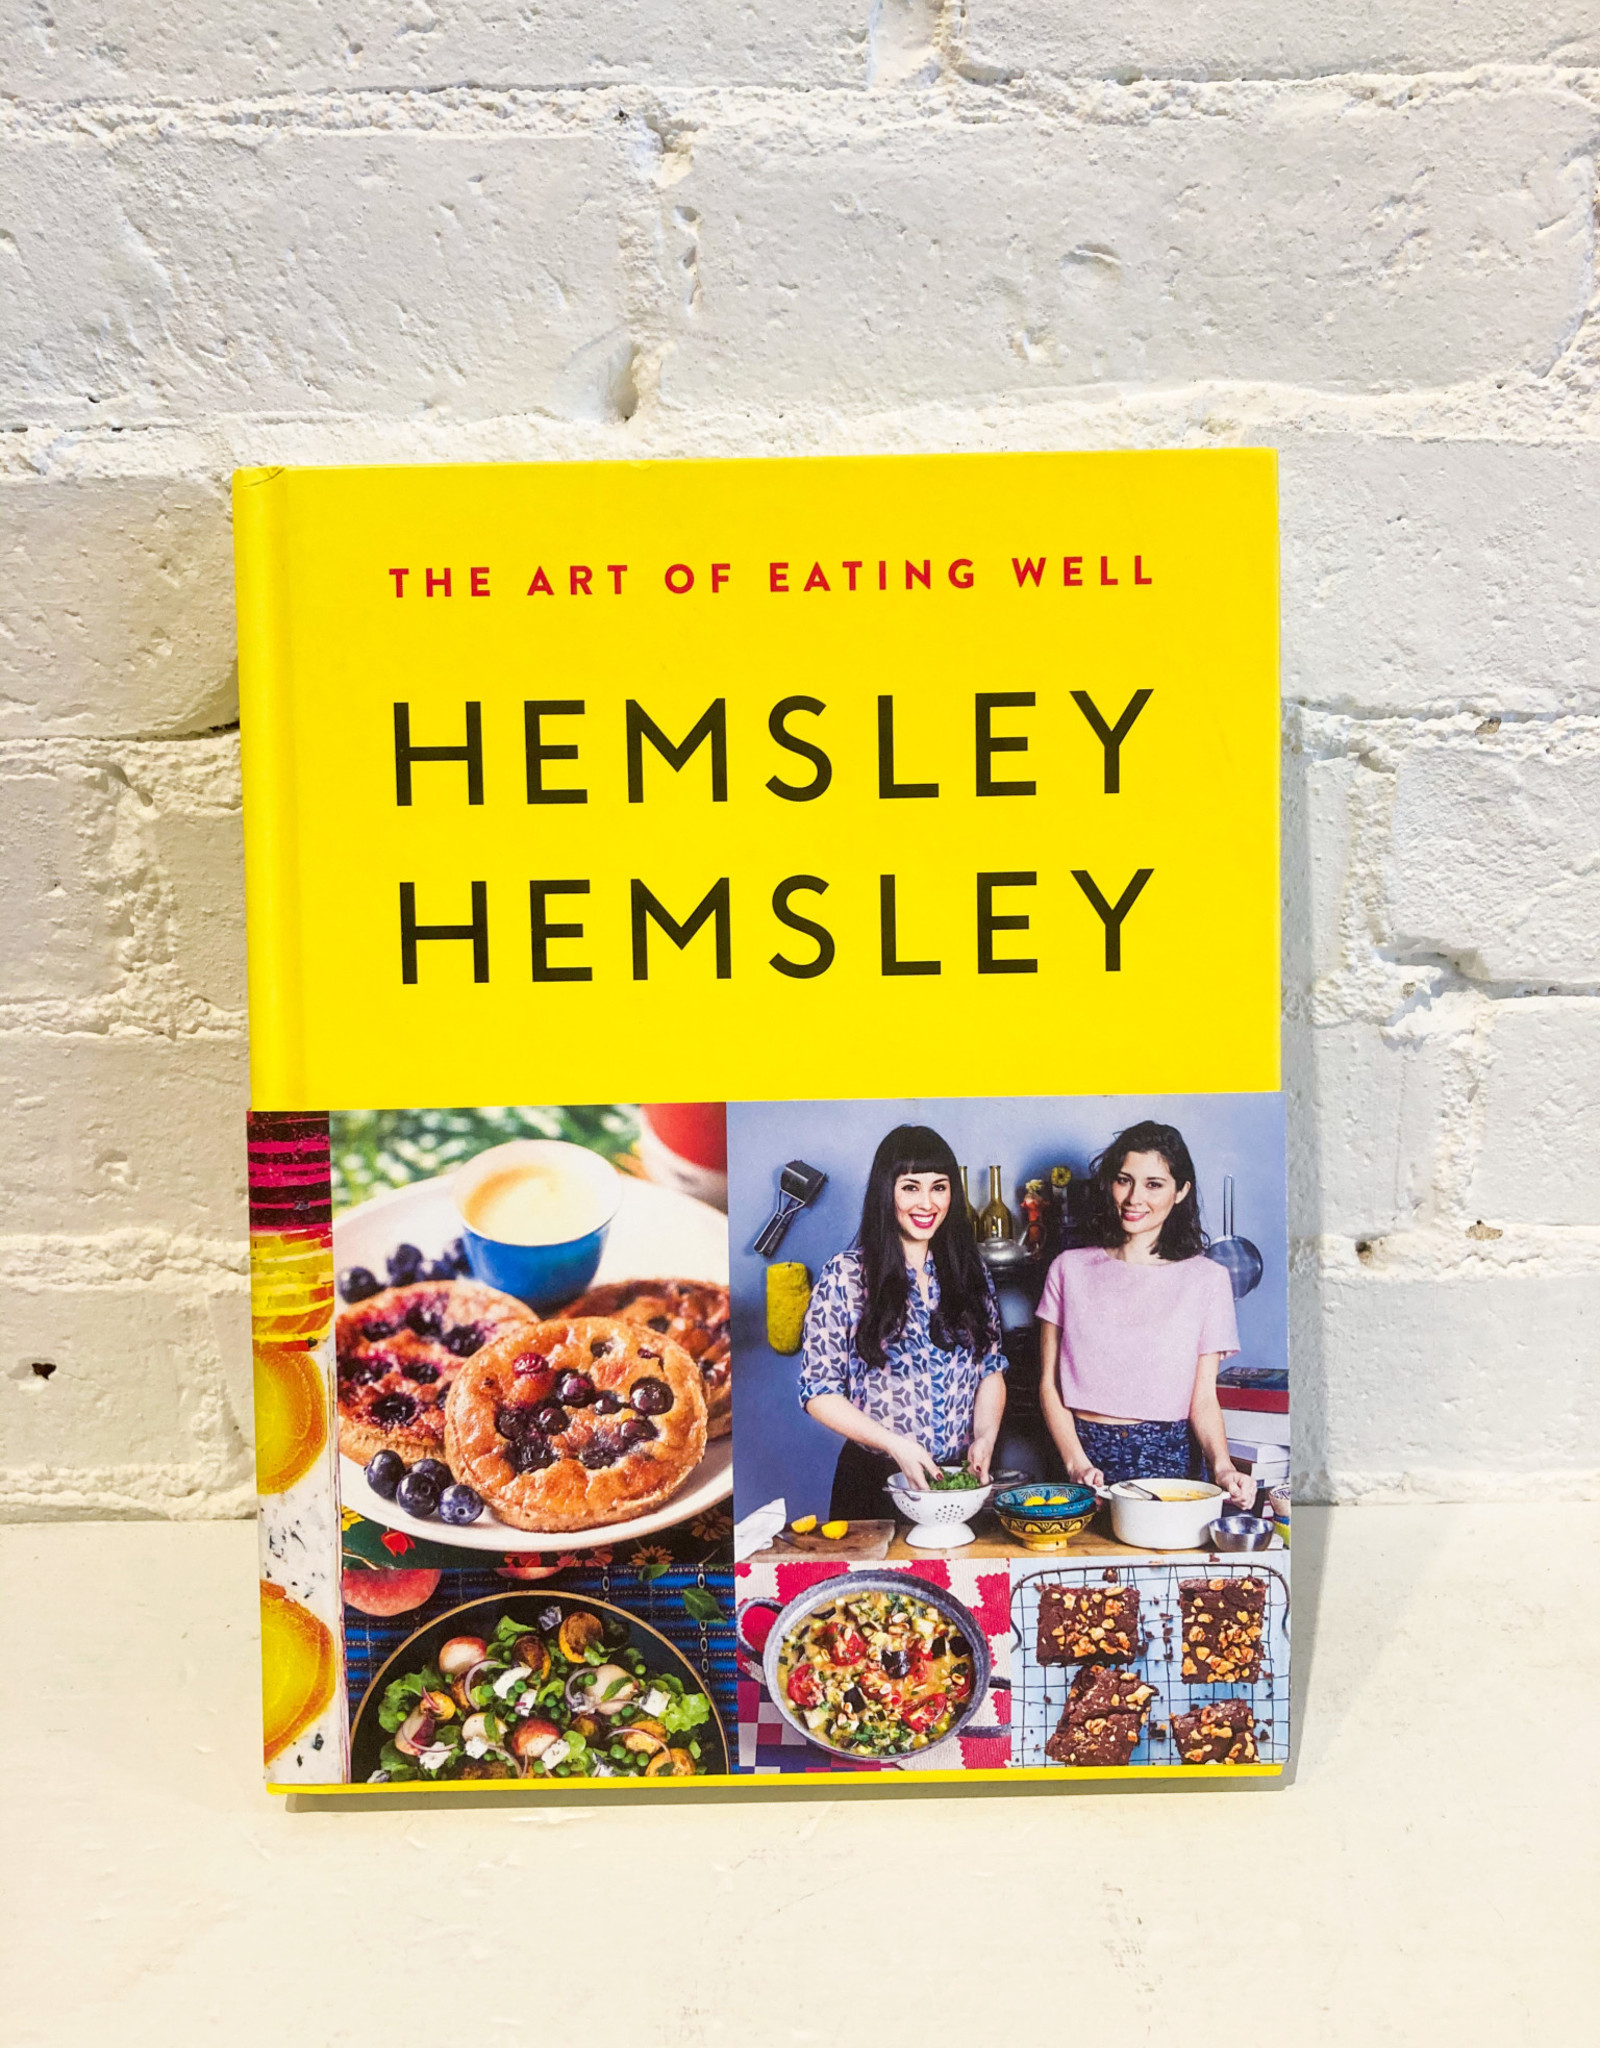 The Art of Eating Well by Jasmine & Melissa Hemsley